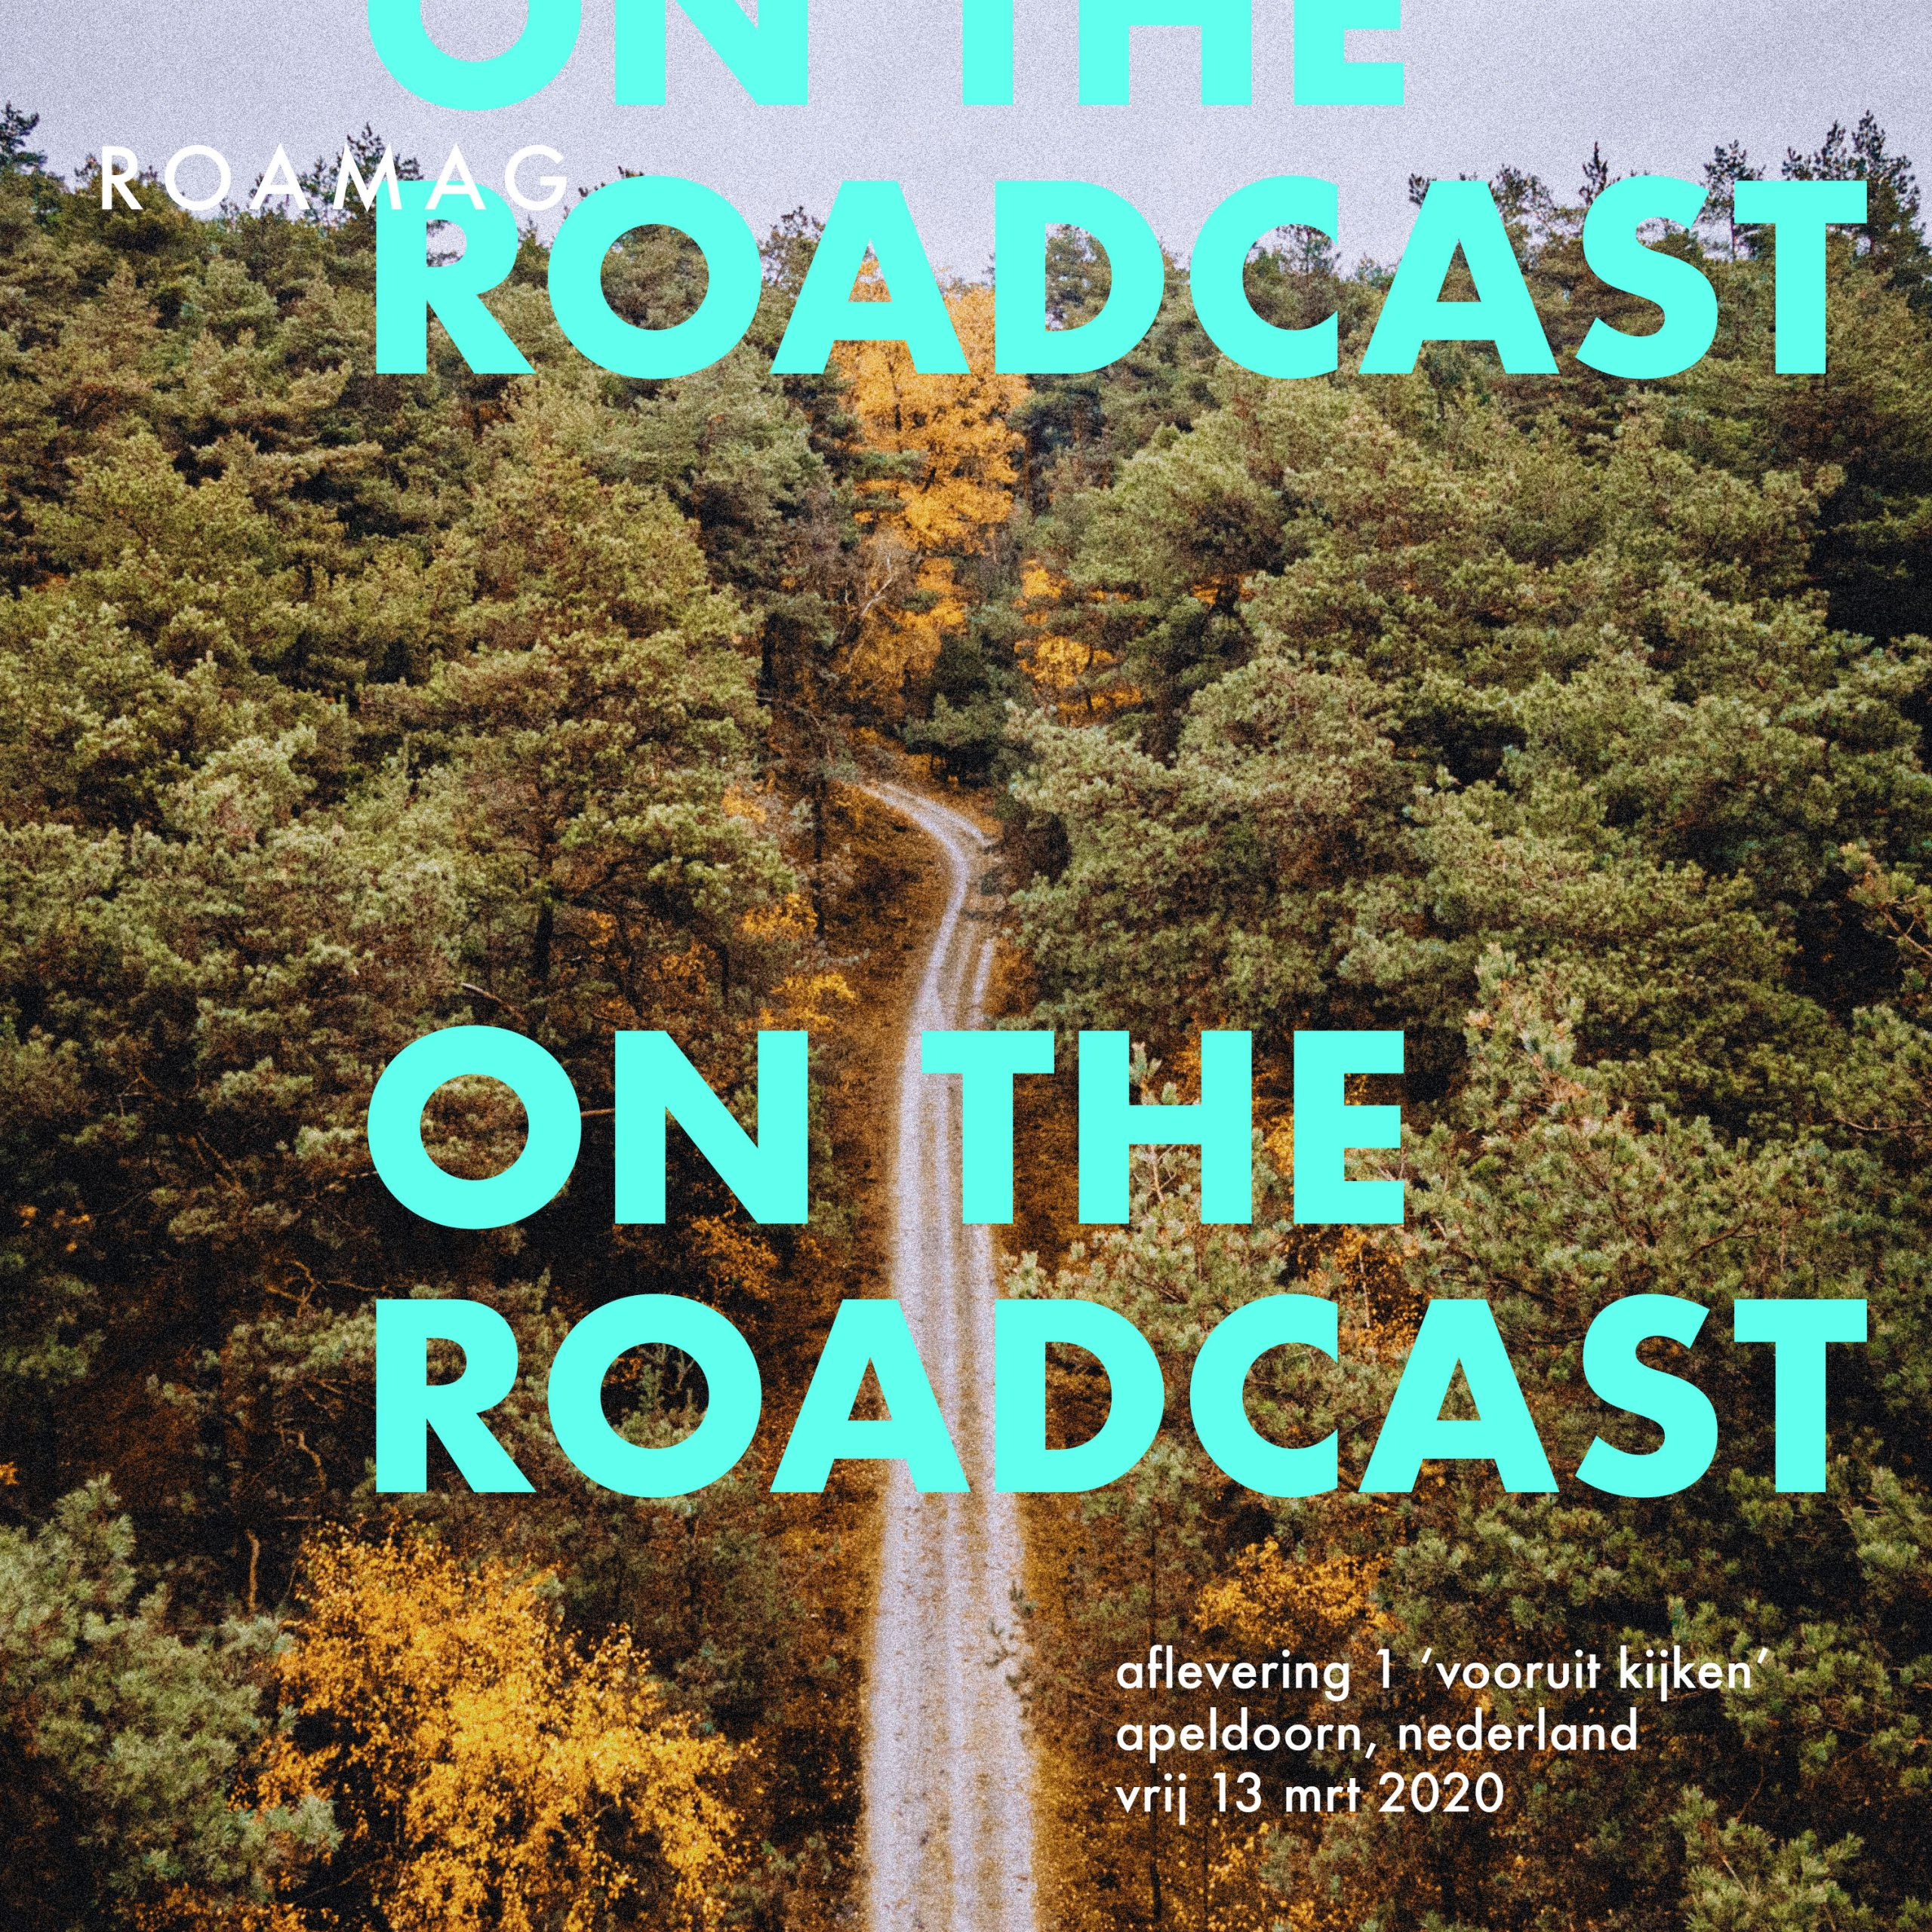 On The Roadcast - afl 1